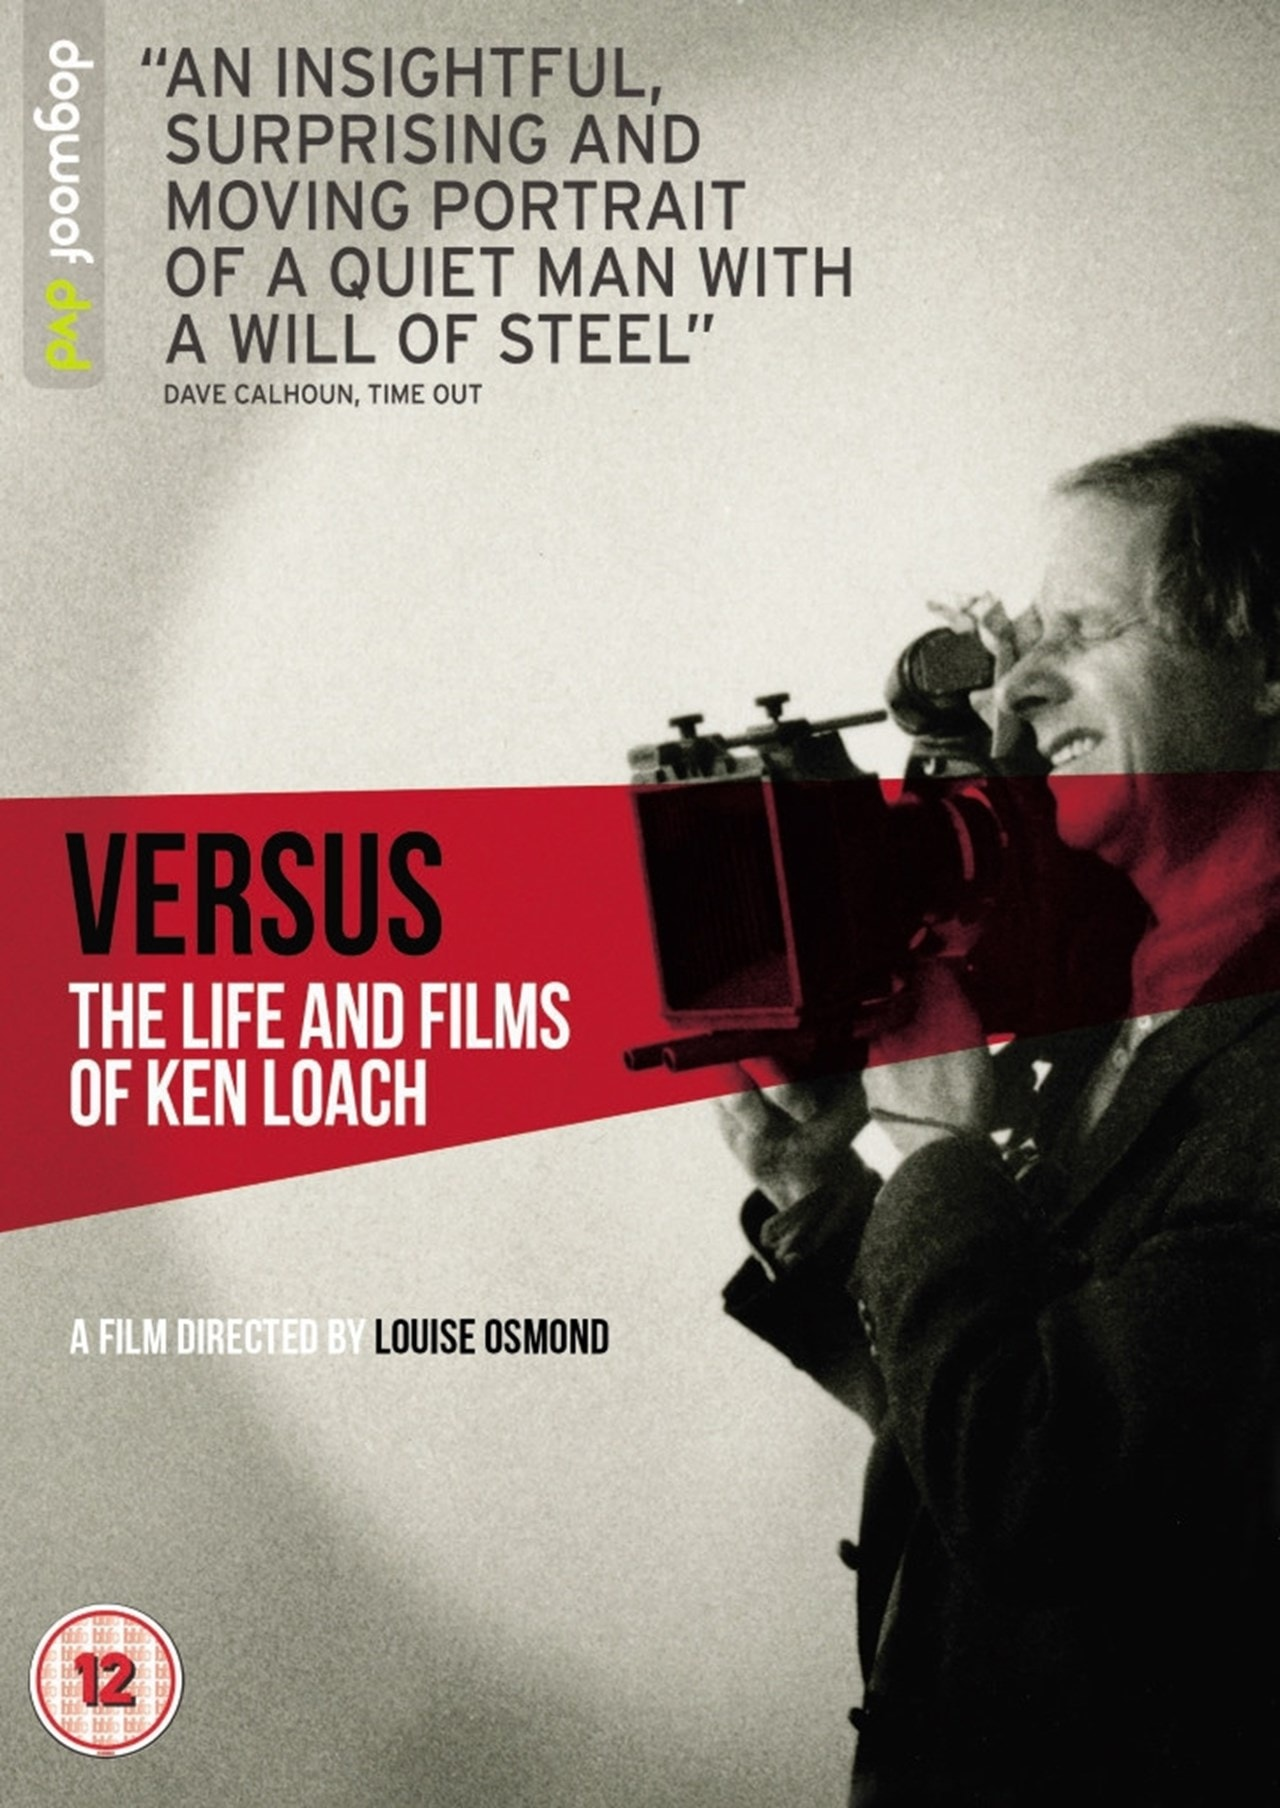 Versus - The Life and Films of Ken Loach - 1